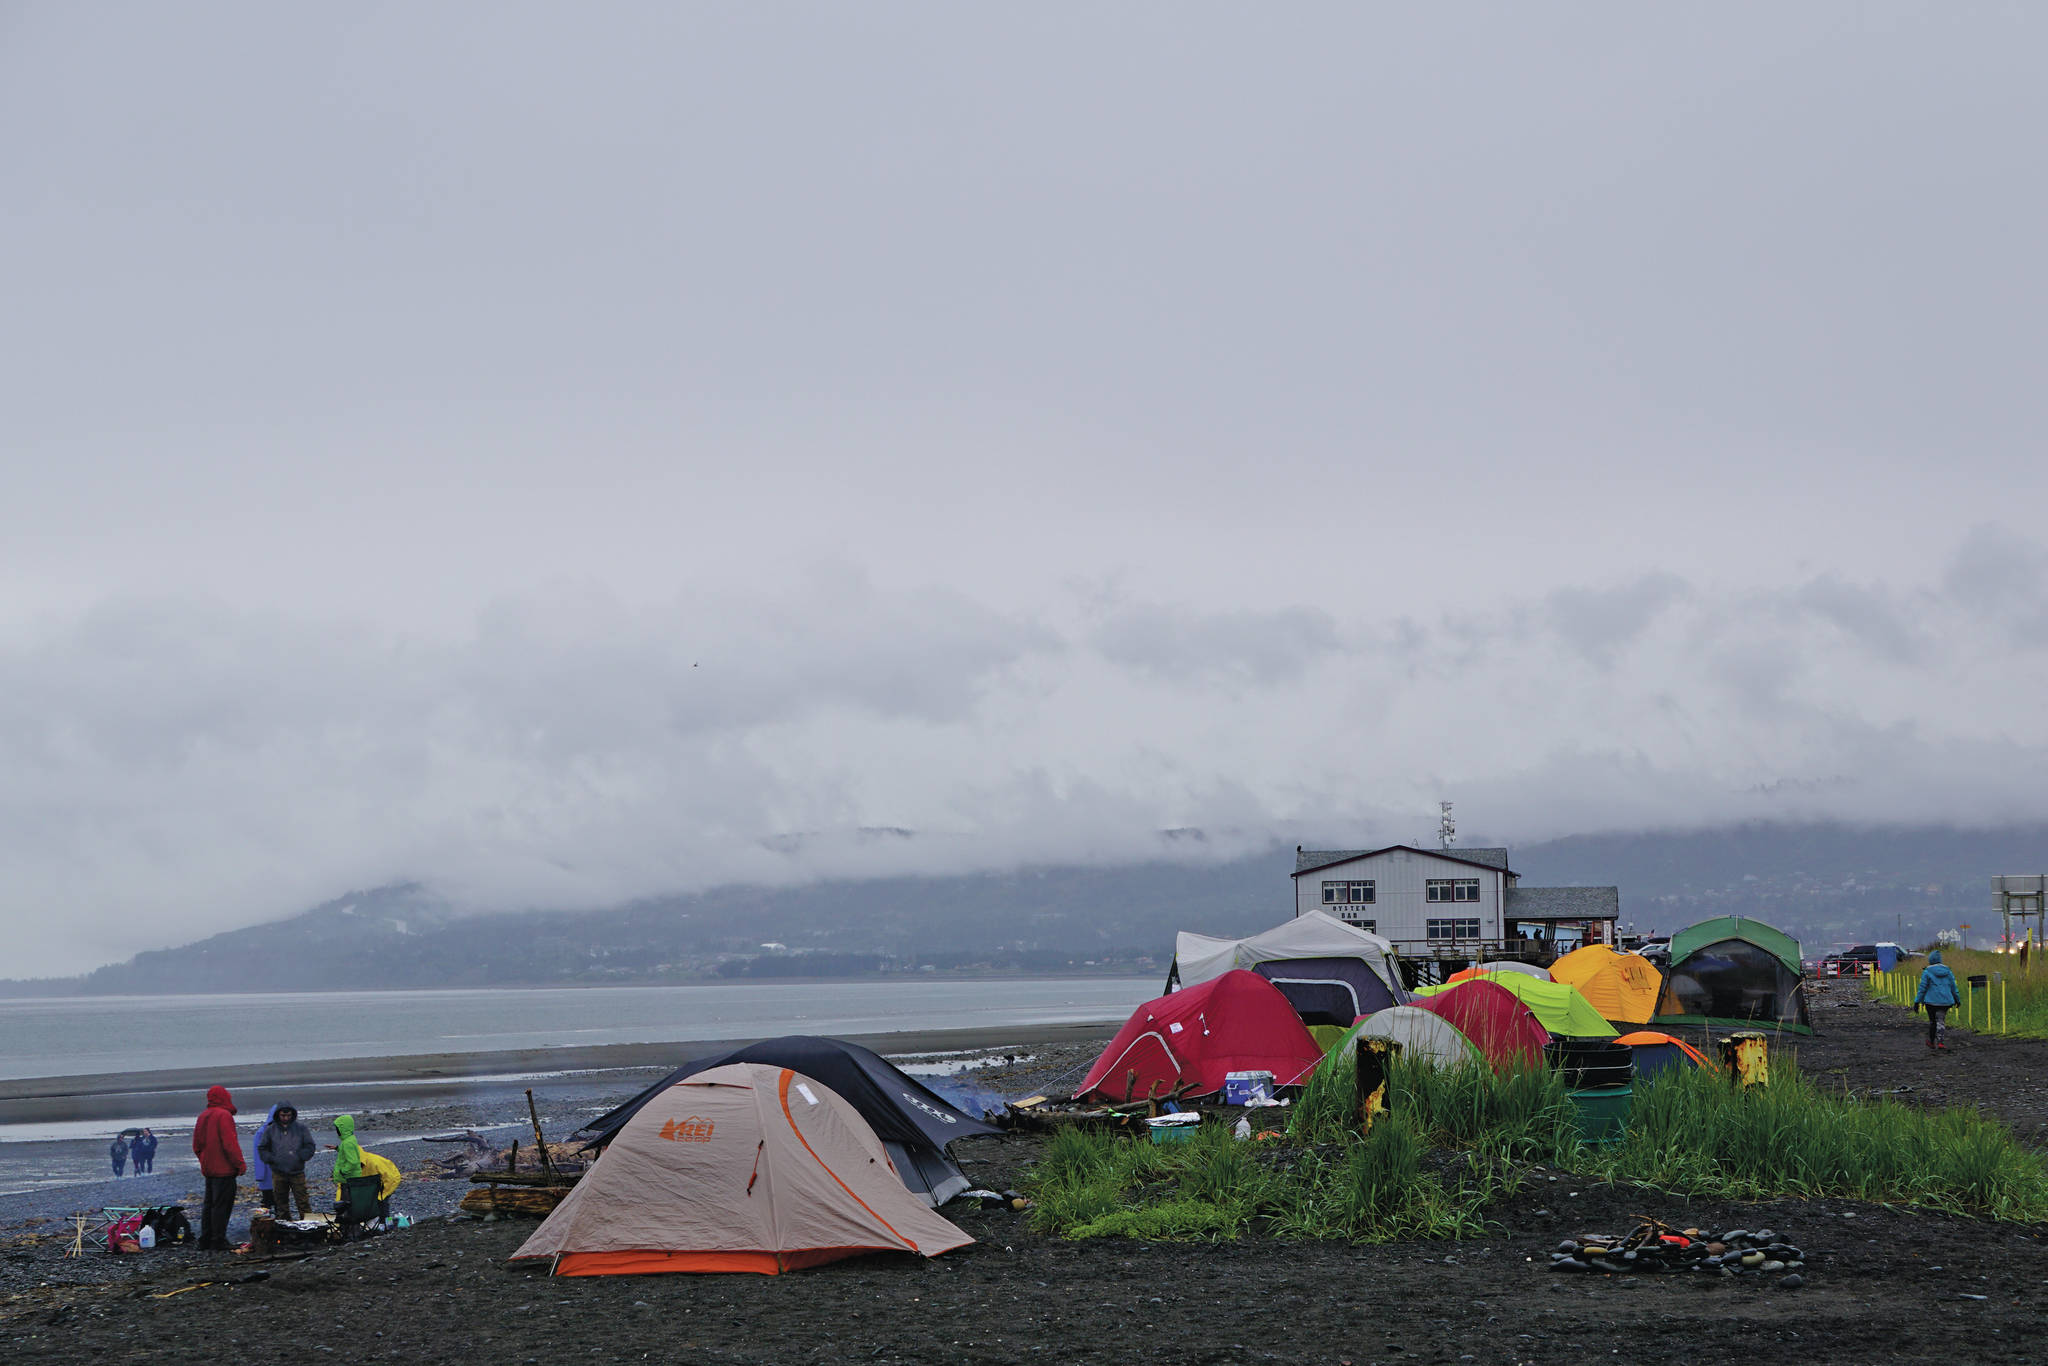 Campers warm up over a bonfire on Saturday, May 29, 2021, on the Homer Spit in Homer, Alaska. (Photo by Michael Armstrong/Homer News)